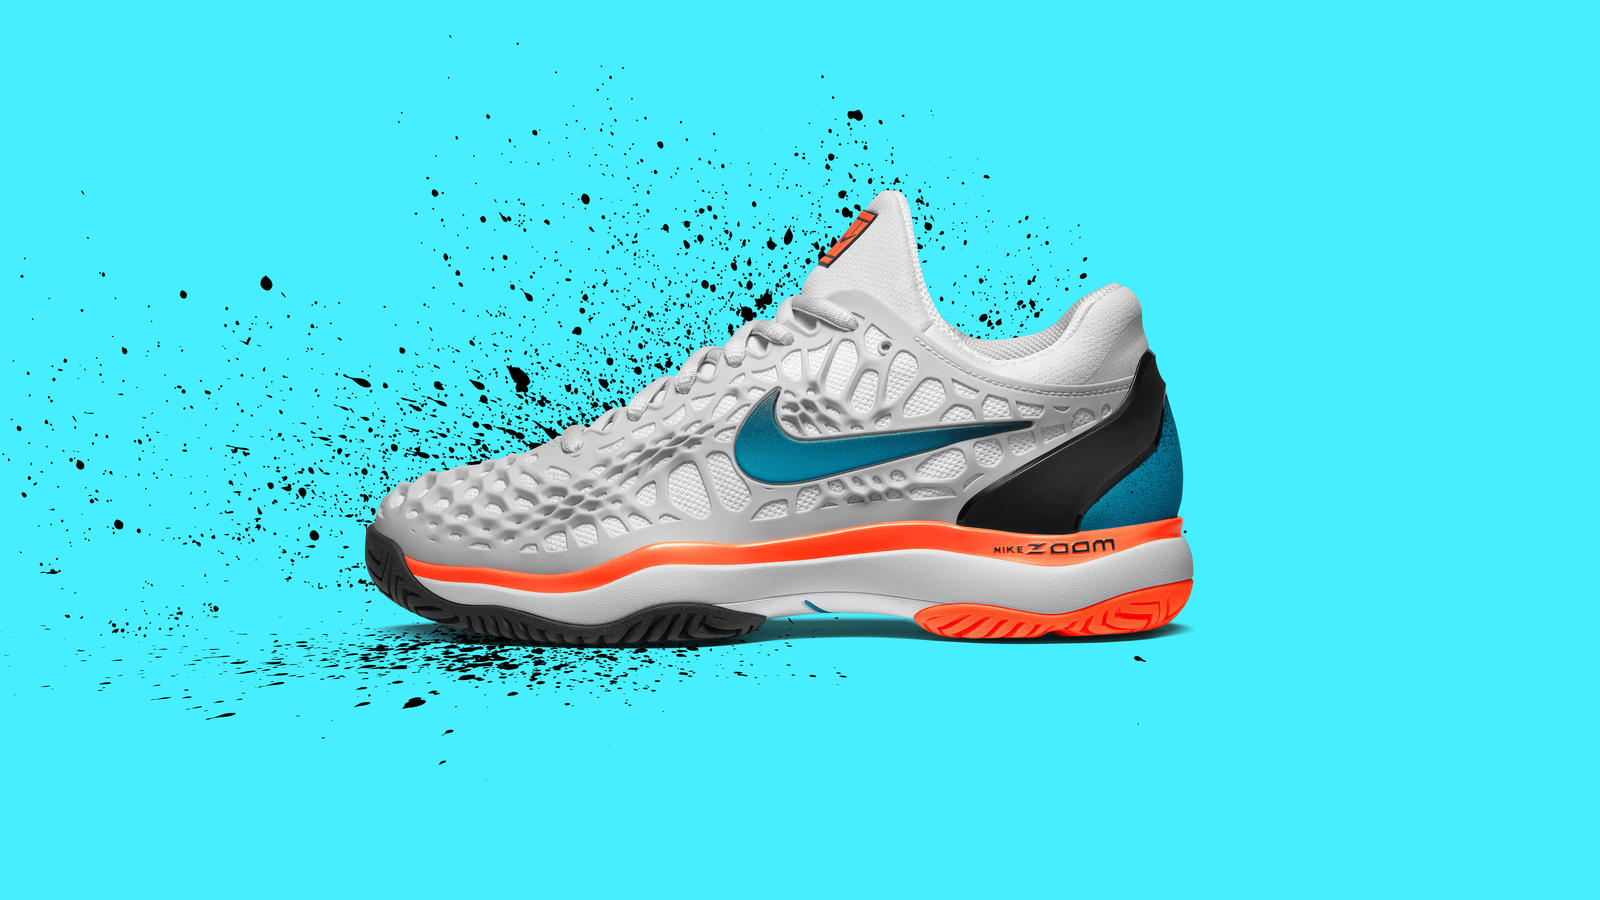 Nikecourt fresh pack 3 hd 1600